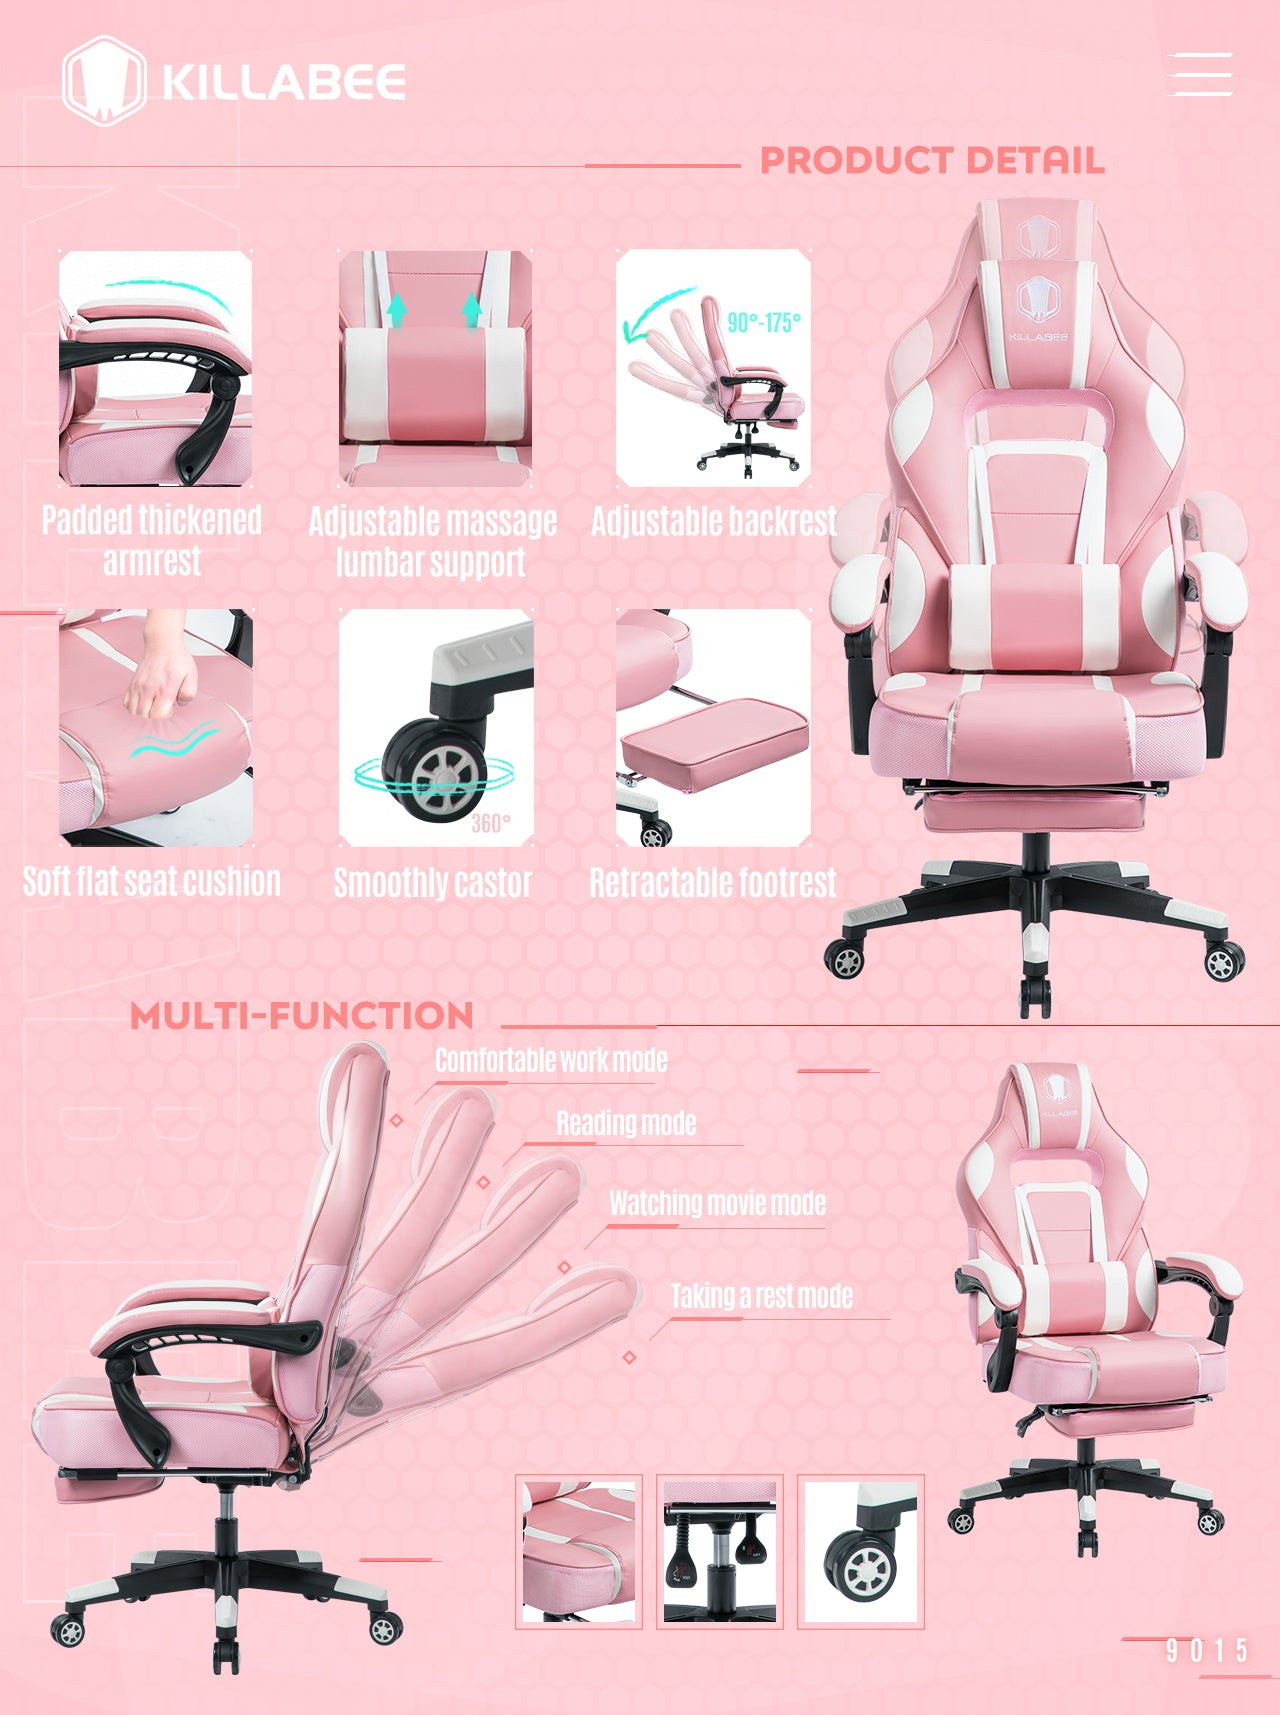 KILLABEE PINK GAMING CHAIR 9015 SERIES WITH MULTIFUNCTIONAL MECHANISM